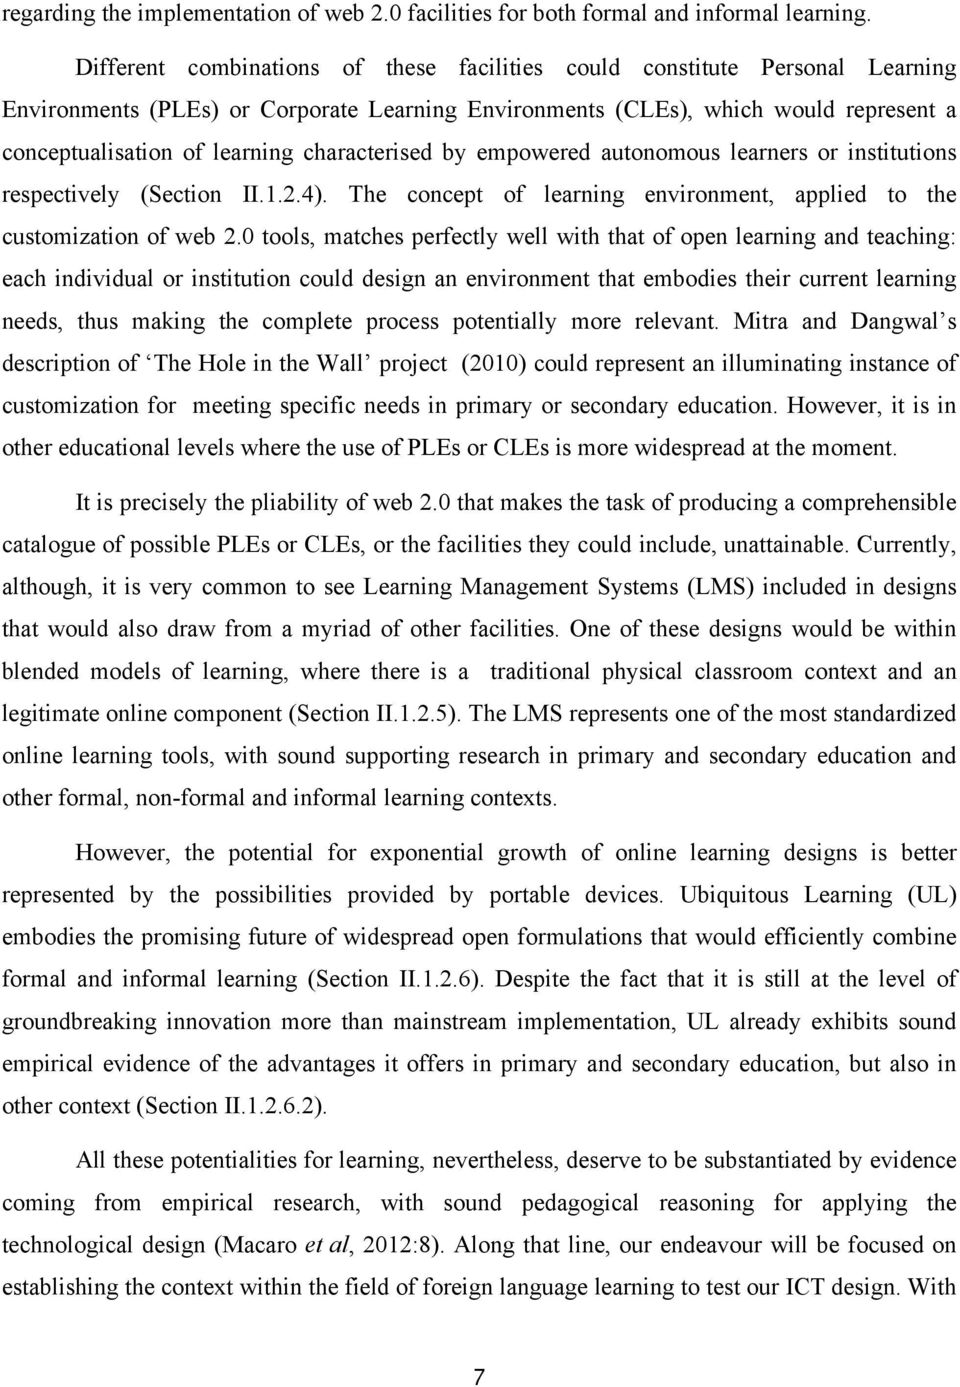 characterised by empowered autonomous learners or institutions respectively (Section II.1.2.4). The concept of learning environment, applied to the customization of web 2.